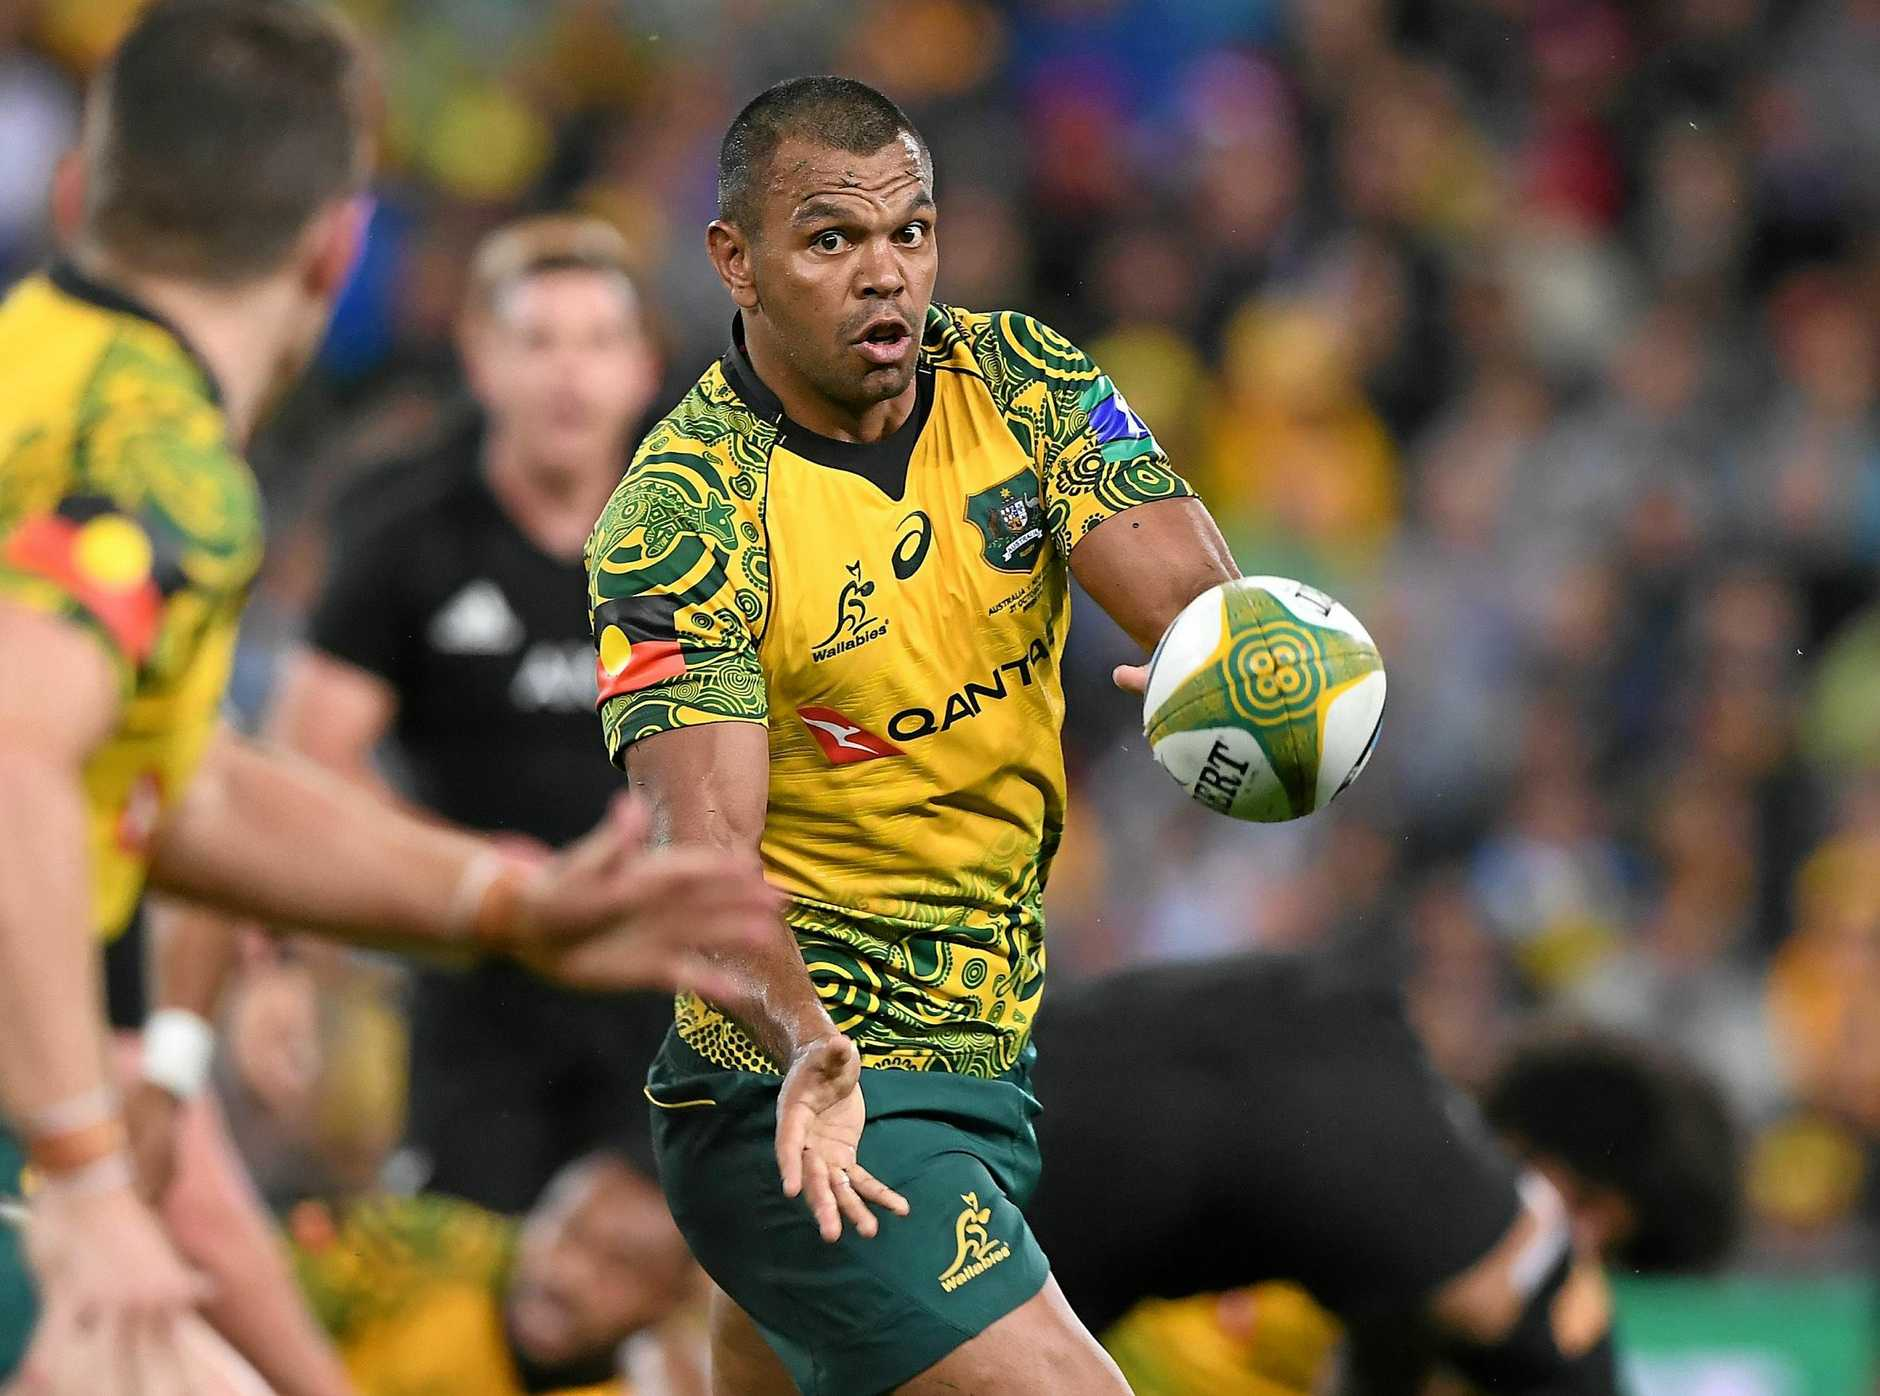 Kurtley Beale in the Wallabies' Indigenous jersey worn in the match against New Zealand.